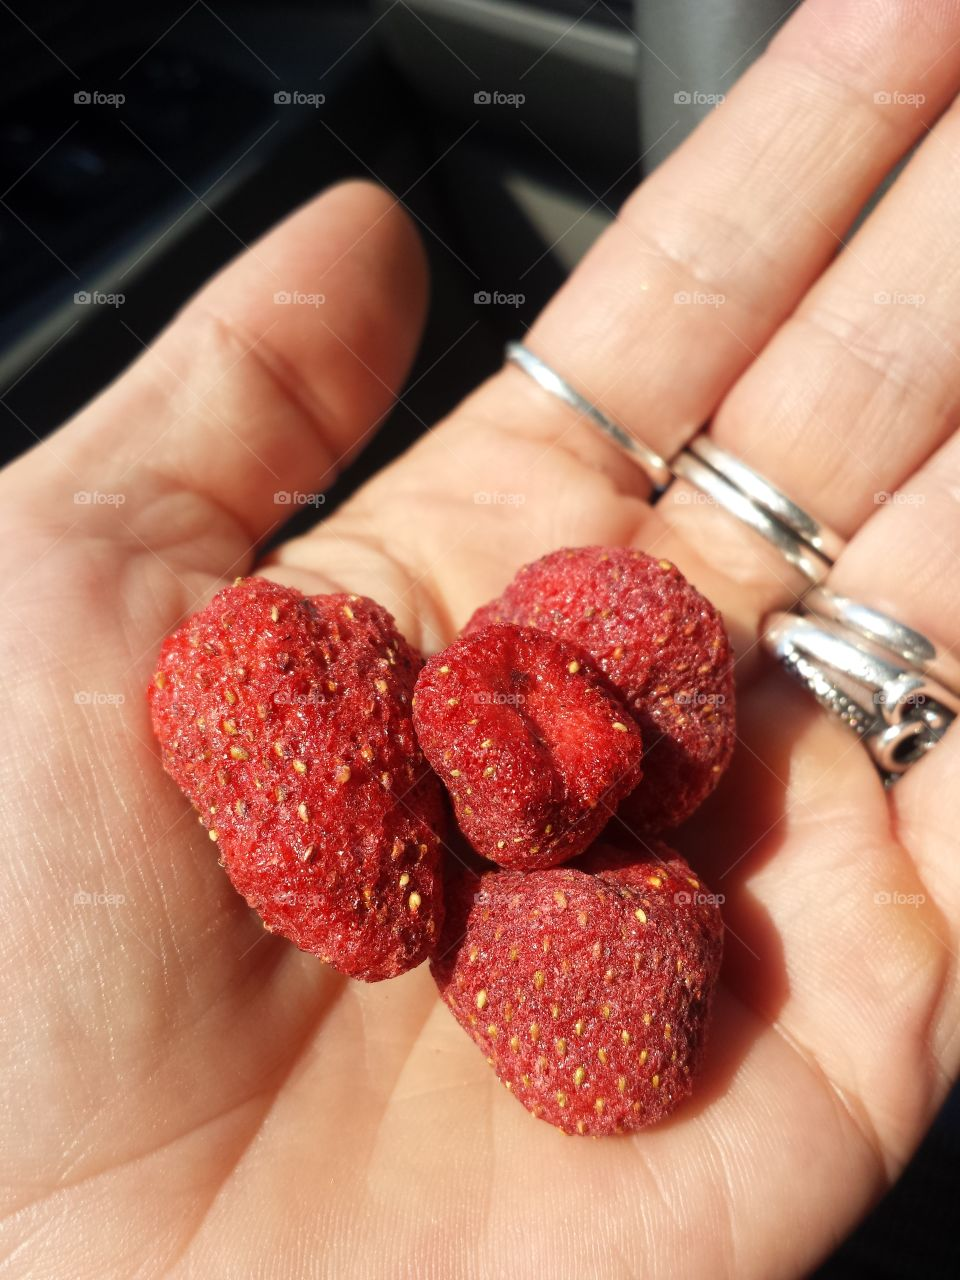 Woman holding strawberries in hand